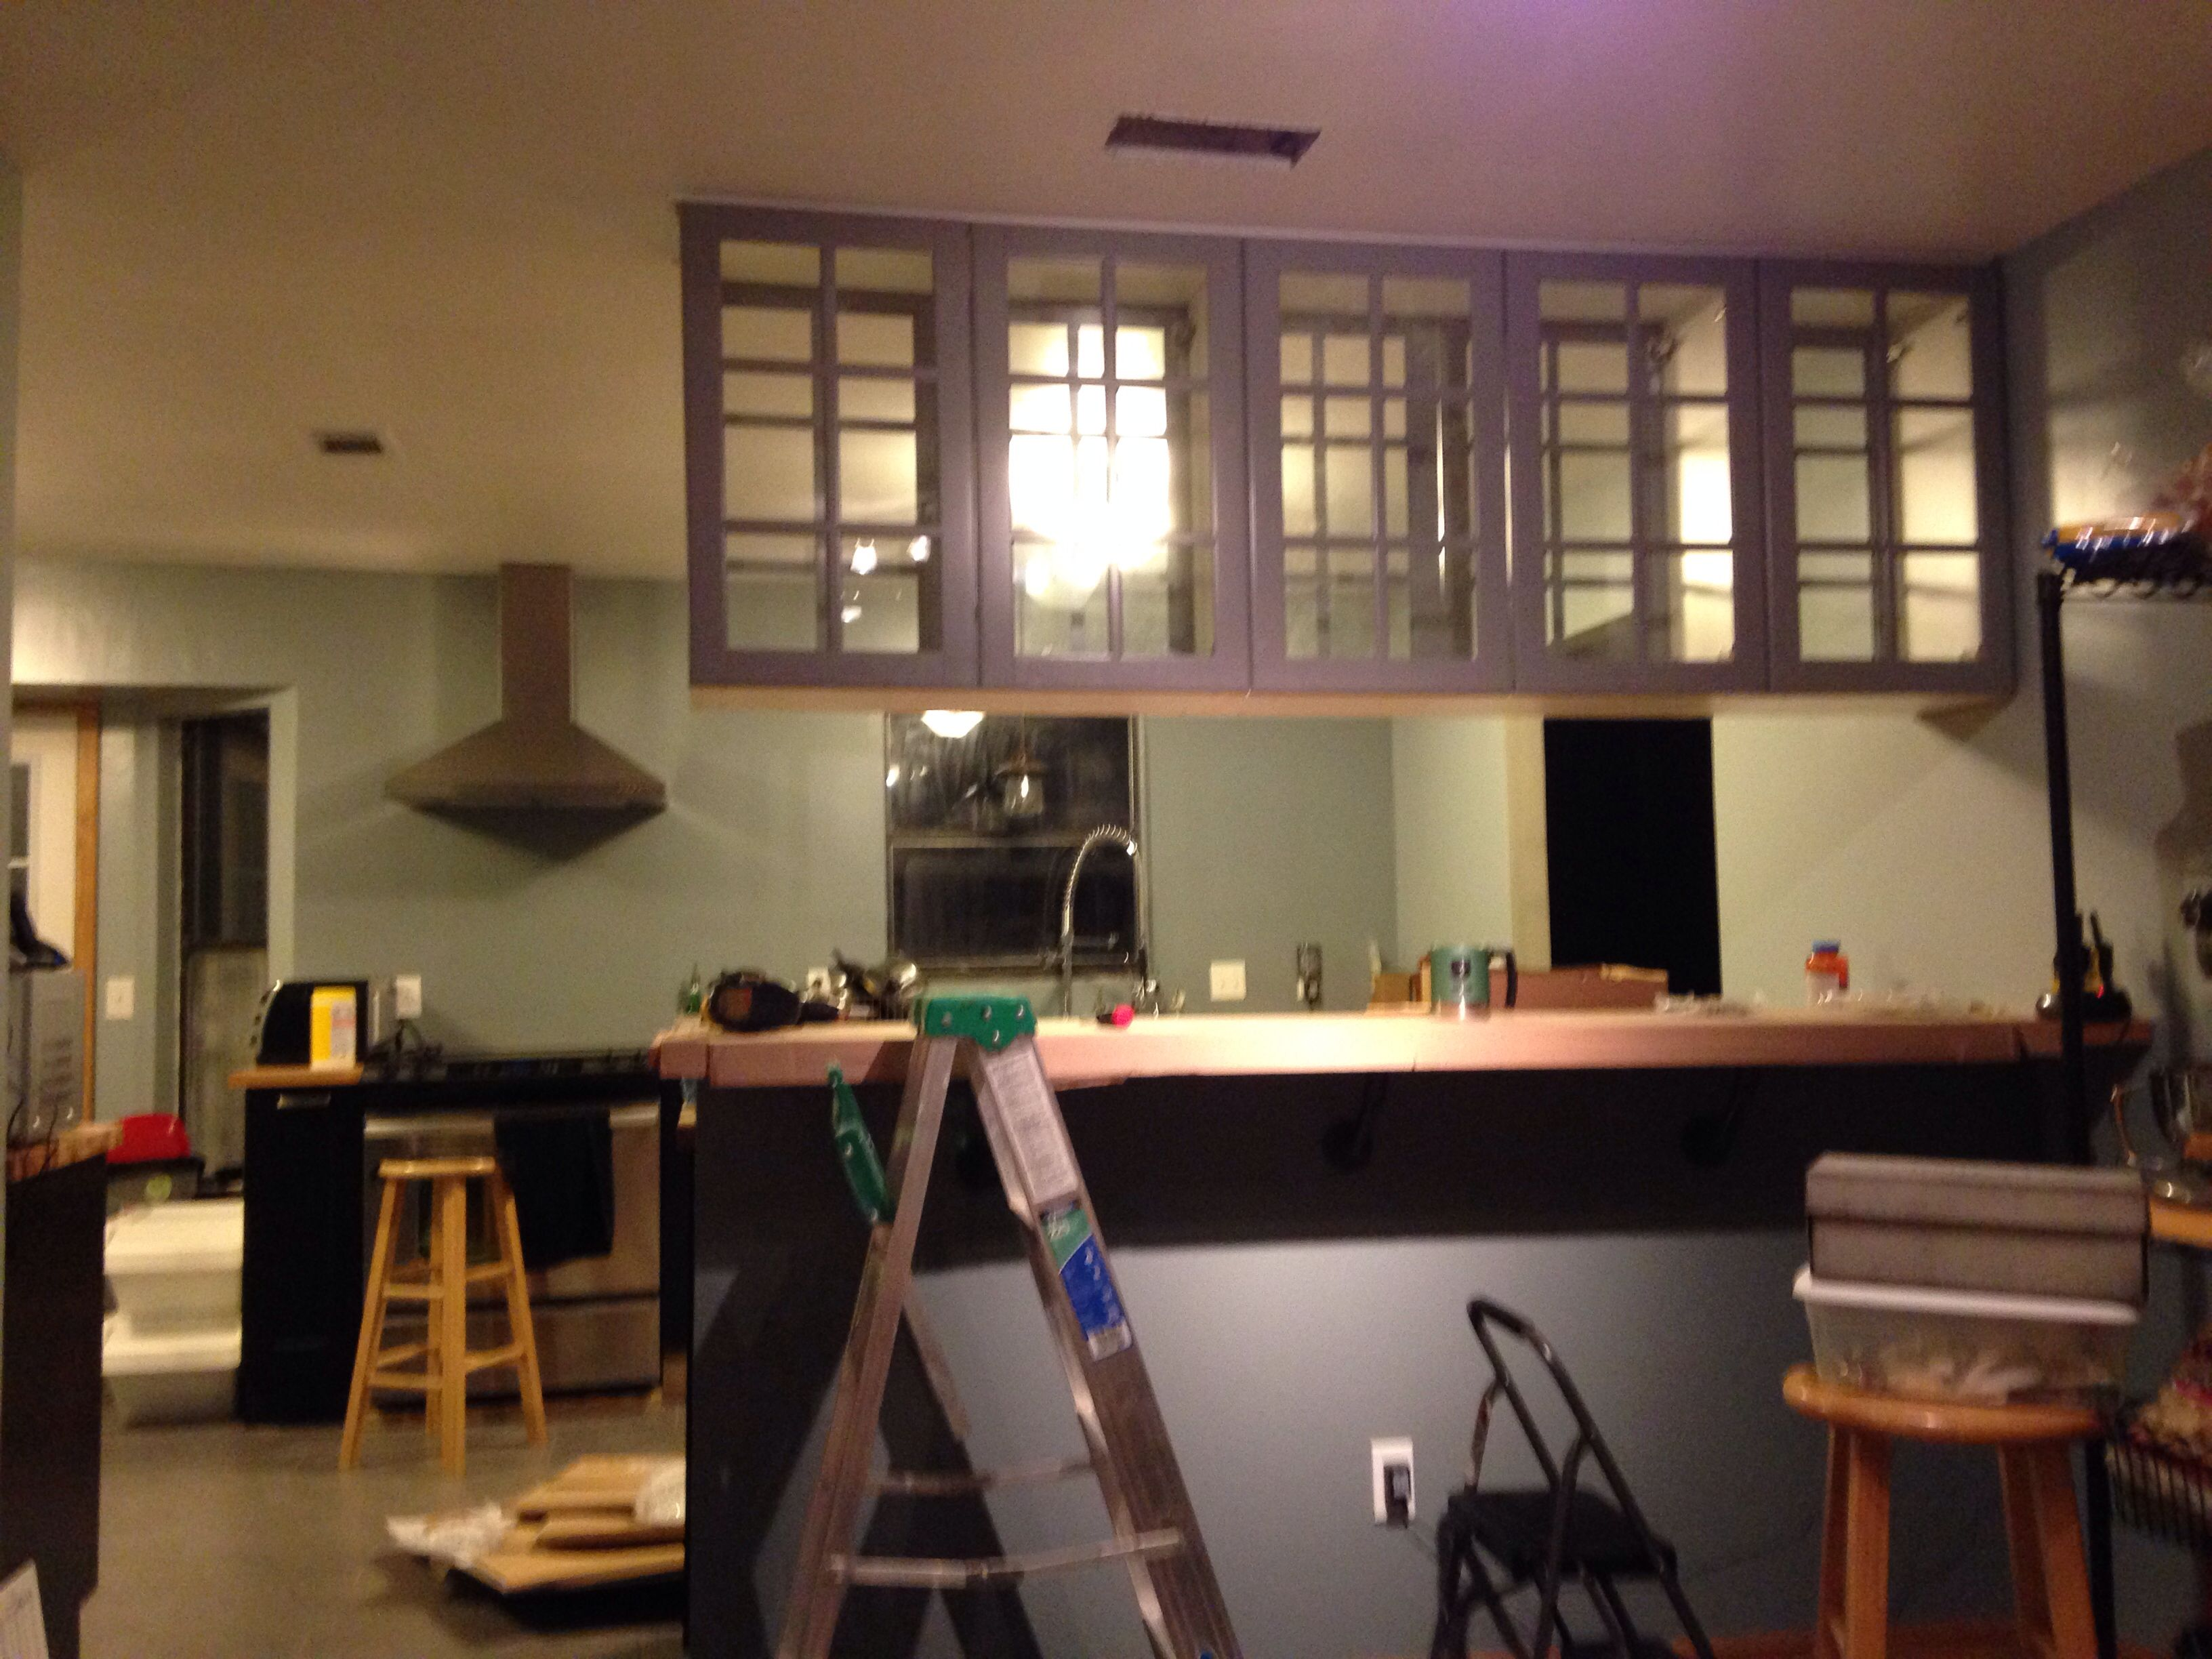 Ceiling Mounted Cabinets With Doors On Both Sides Ikea